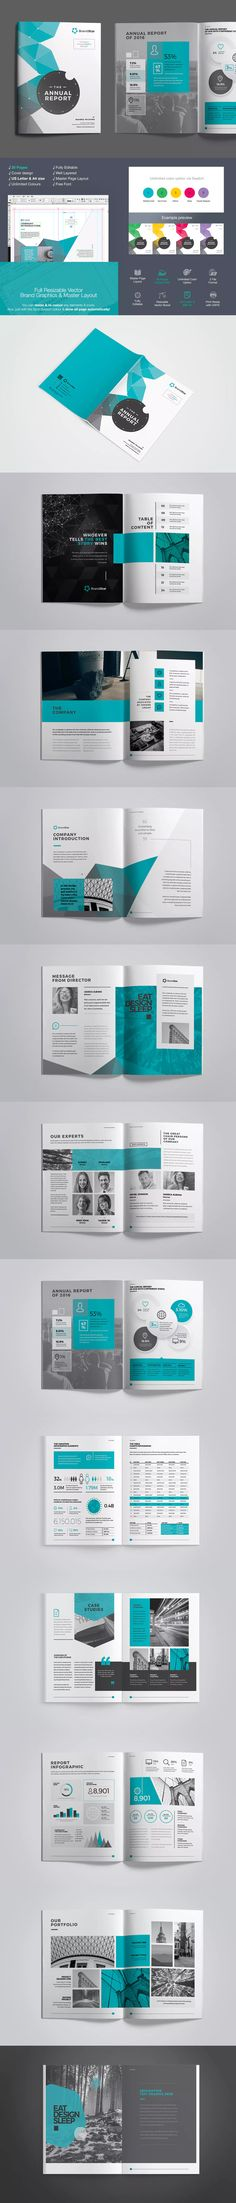 Annual report brochure flyer template, Orange cover design - professional report template